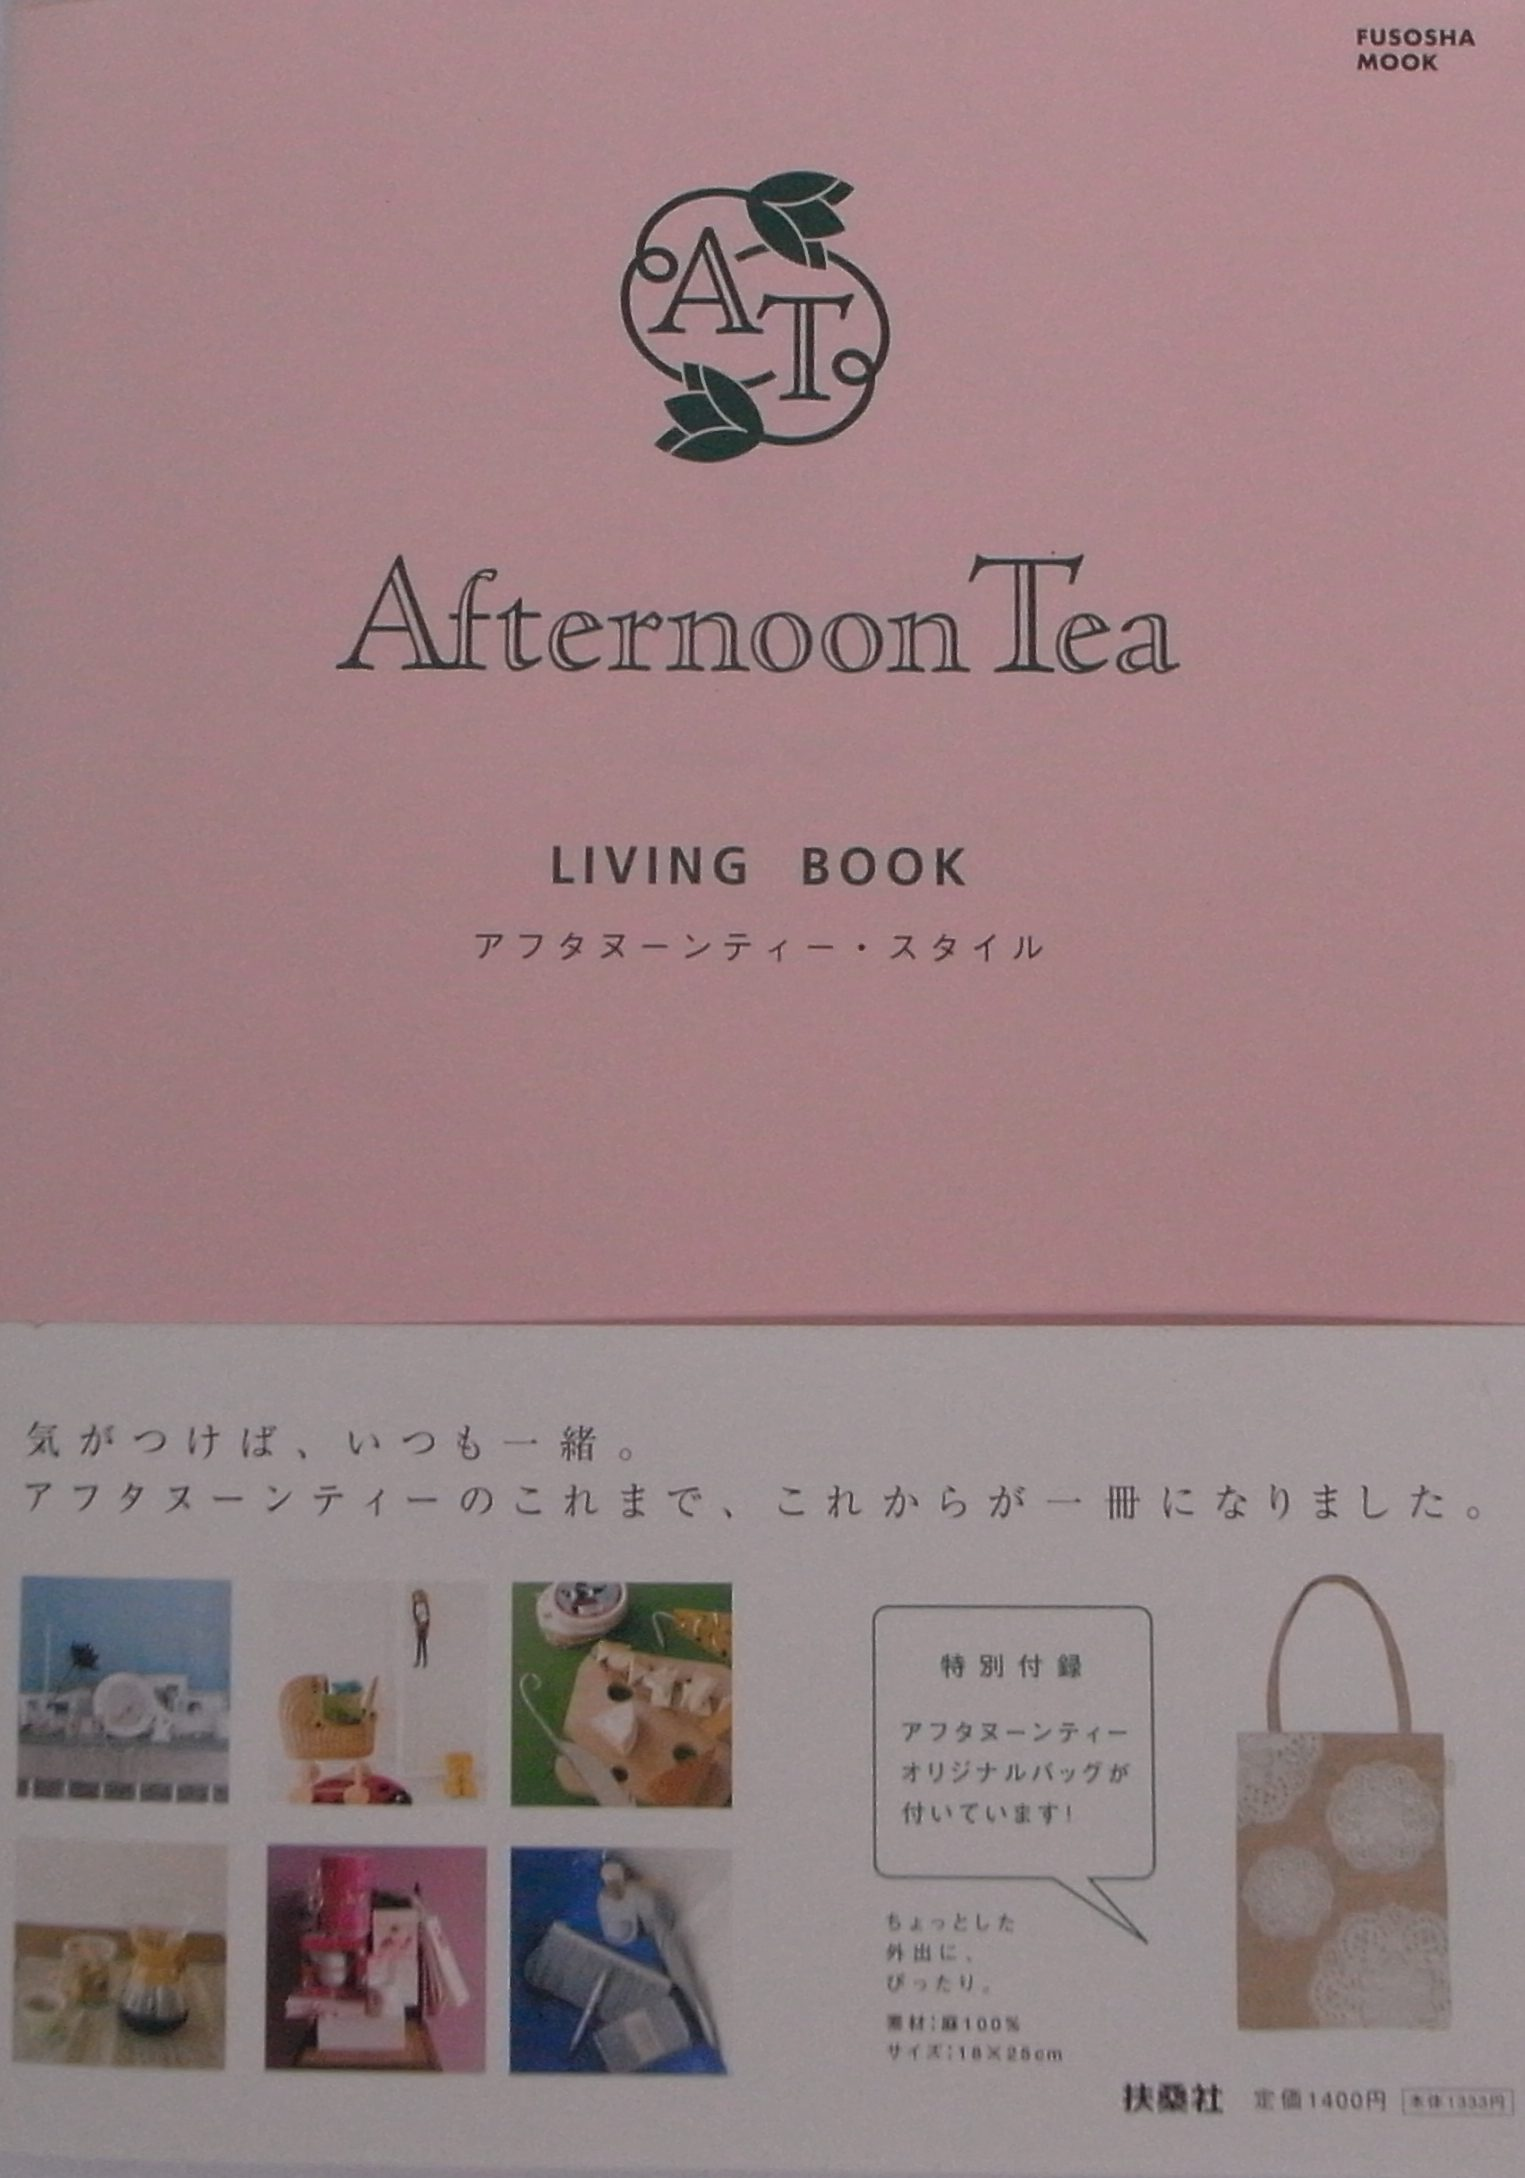 Afternoon Tea LIVING BOOK